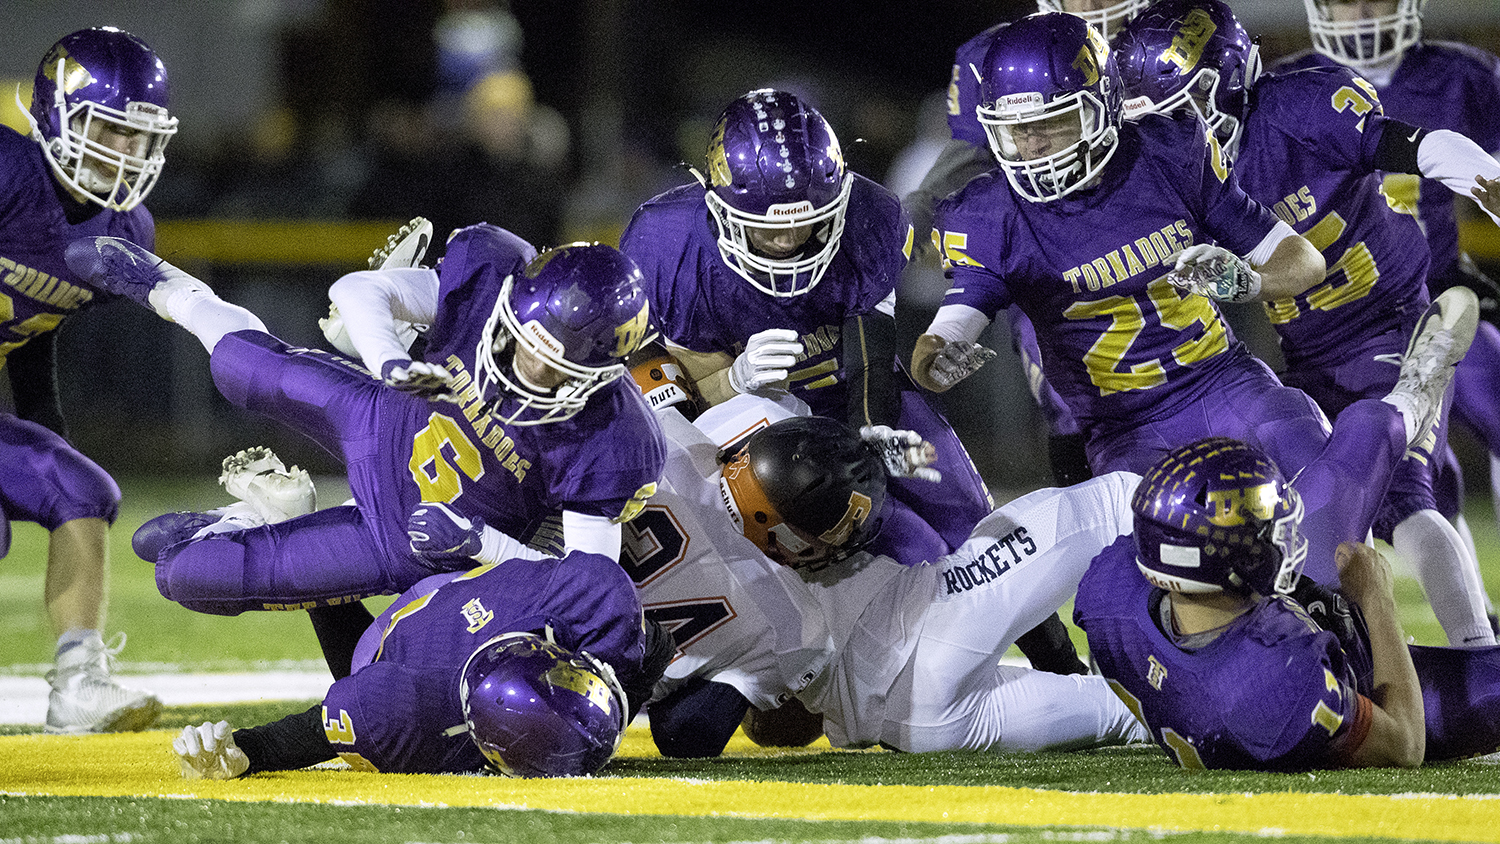 The Taylorville defense collapses onto an onside kick during the Class 4A quarterfinals in Taylorville Saturday, Nov. 10, 2018. [Ted Schurter/The State Journal-Register]